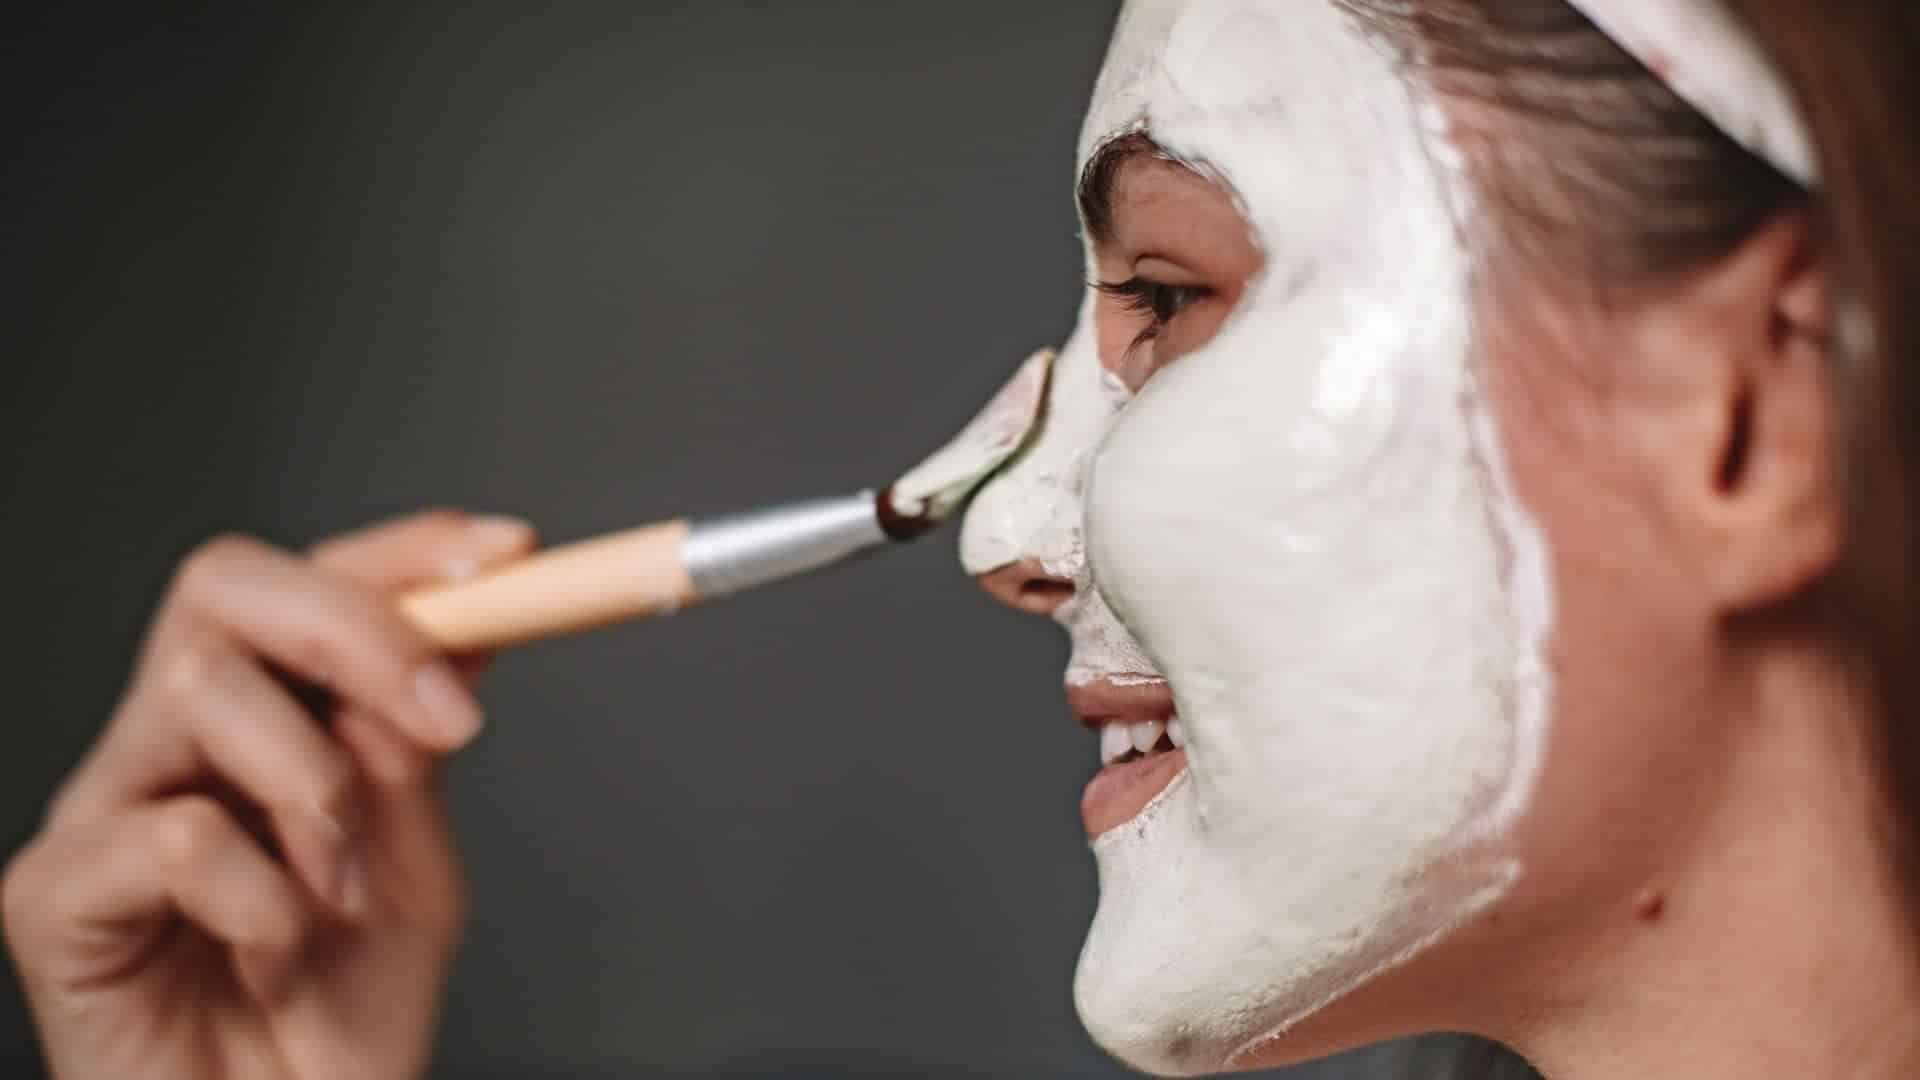 How To Apply White Face Paint Evenly